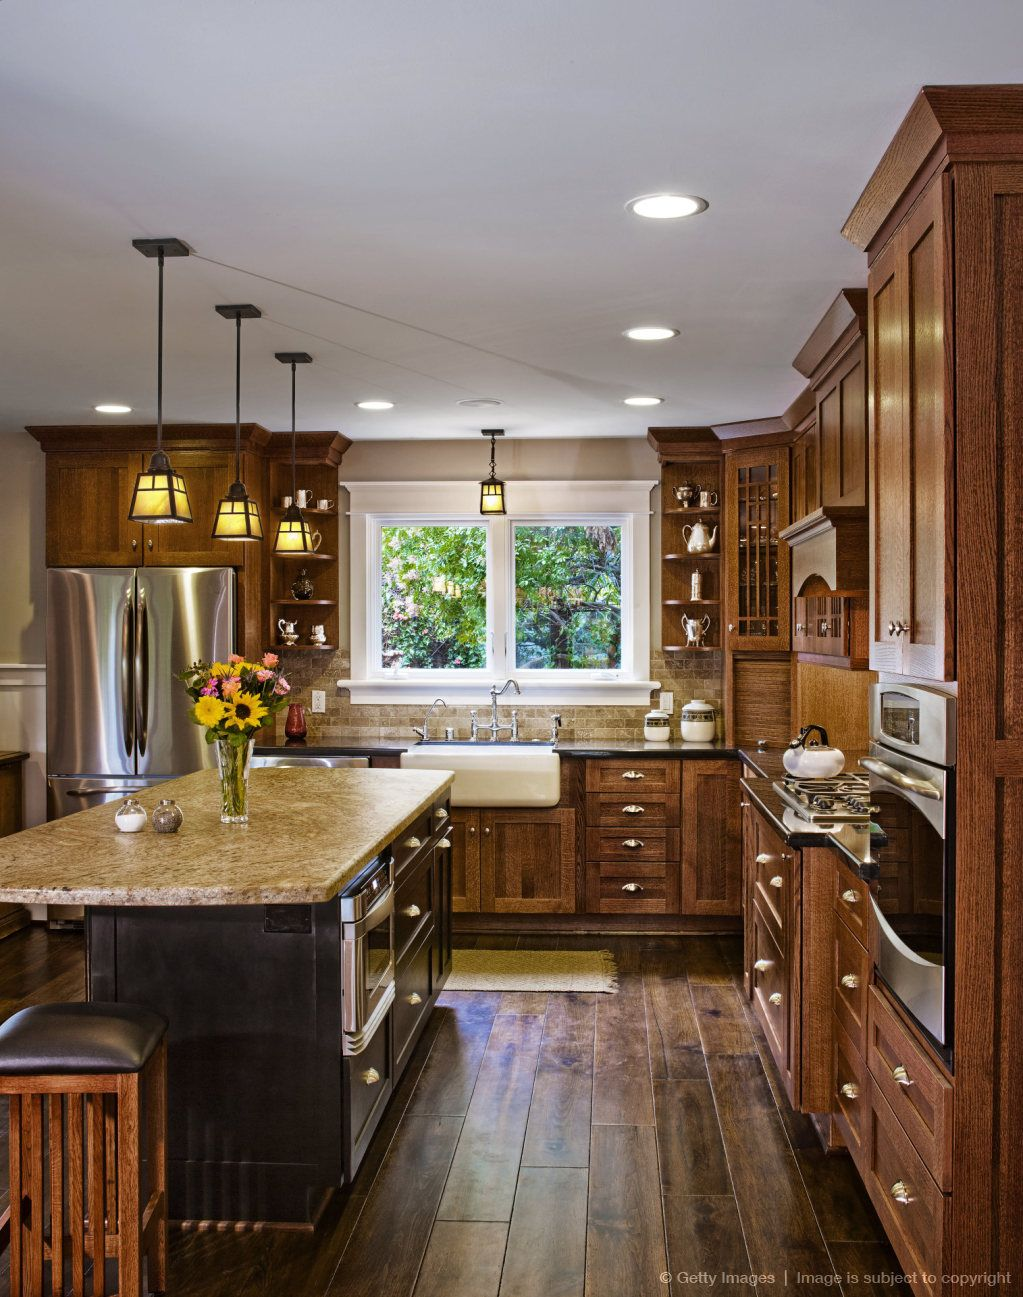 Image detail for Hardwood floors and cabinets in kitchen